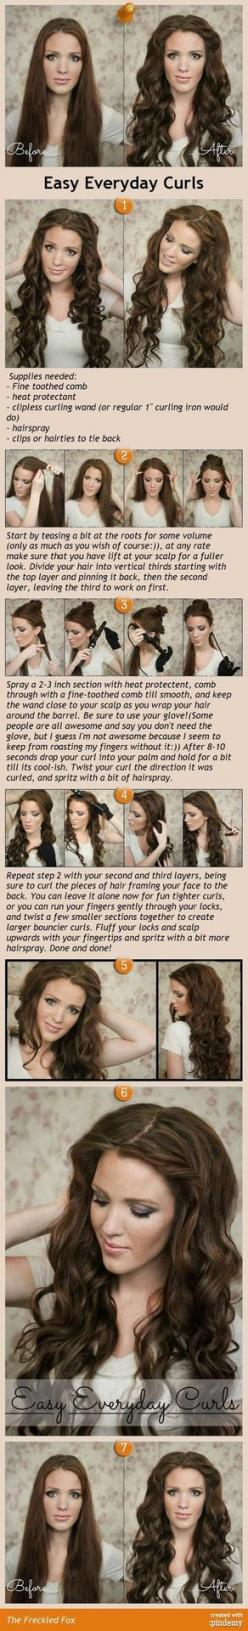 Easy Everyday Curls tutorial. I love this for my long hair.: Hairstyling Makeup Nails, Wedding Hair, Curls Hair, Hairstyles Haircuts, Curled Hair Styles, Curling Hair Tutorials, Hairstyles Cut Colour, Curling Iron